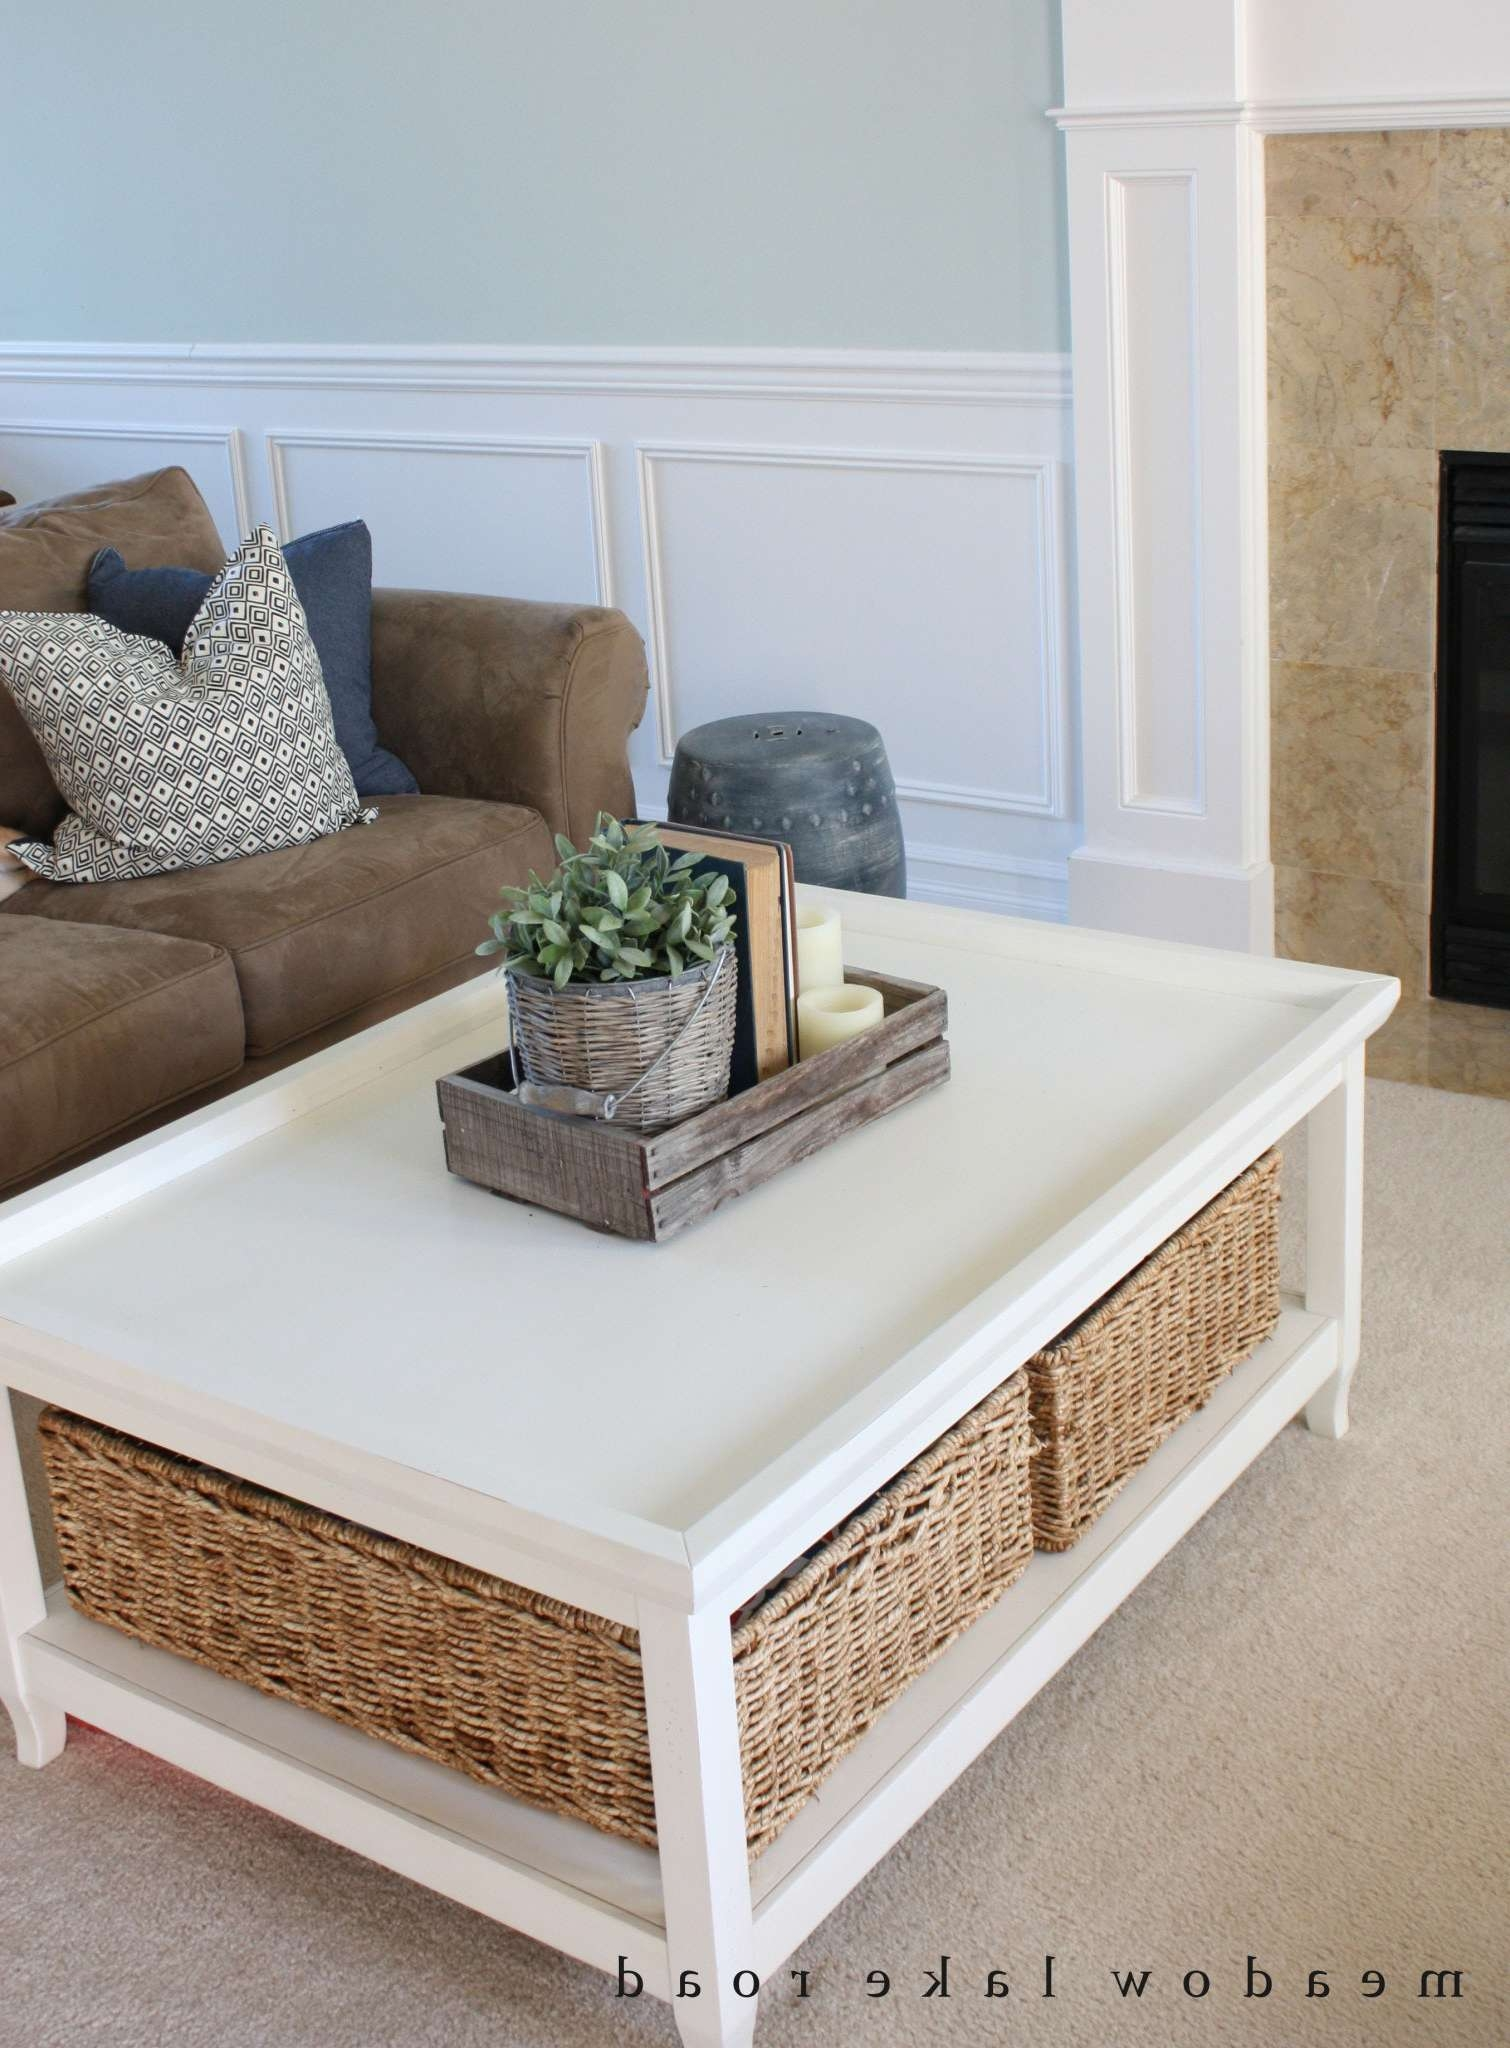 Coffee Tables : White Coffee Table With Storage White Glass Coffee With Regard To Latest Coffee Table With Wicker Basket Storage (View 9 of 20)